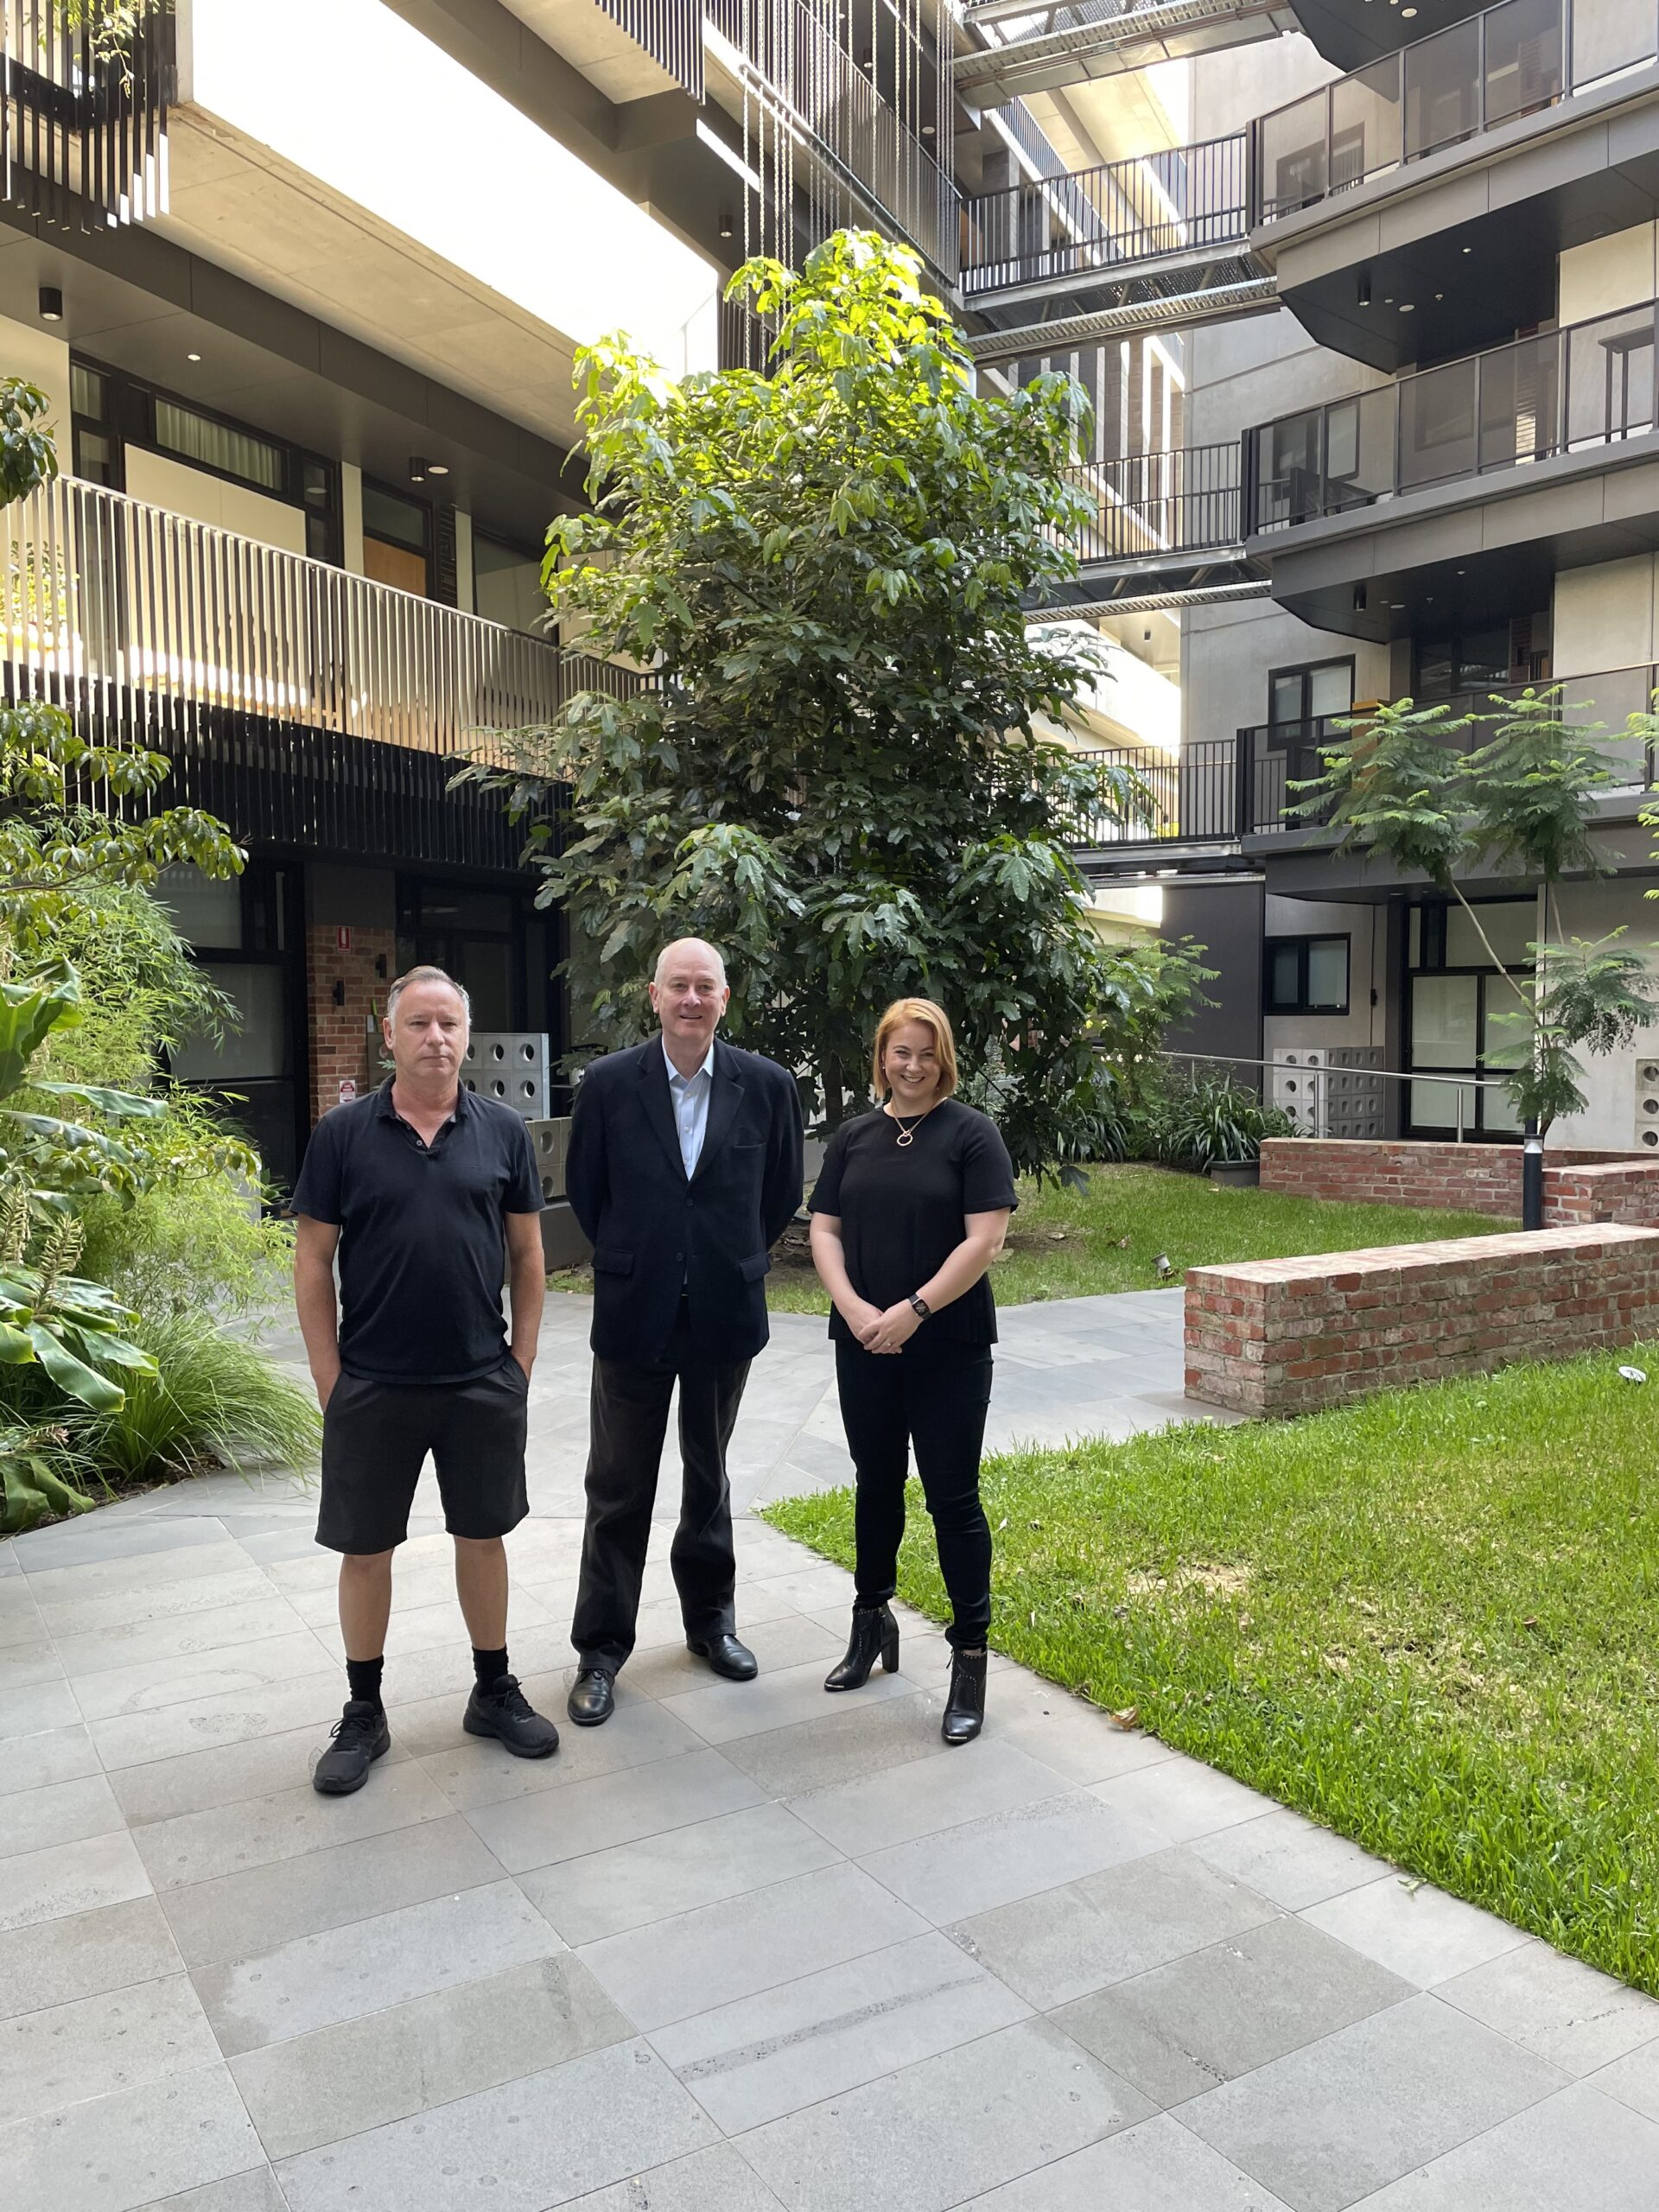 New apartment standards aim to boost quality of life.